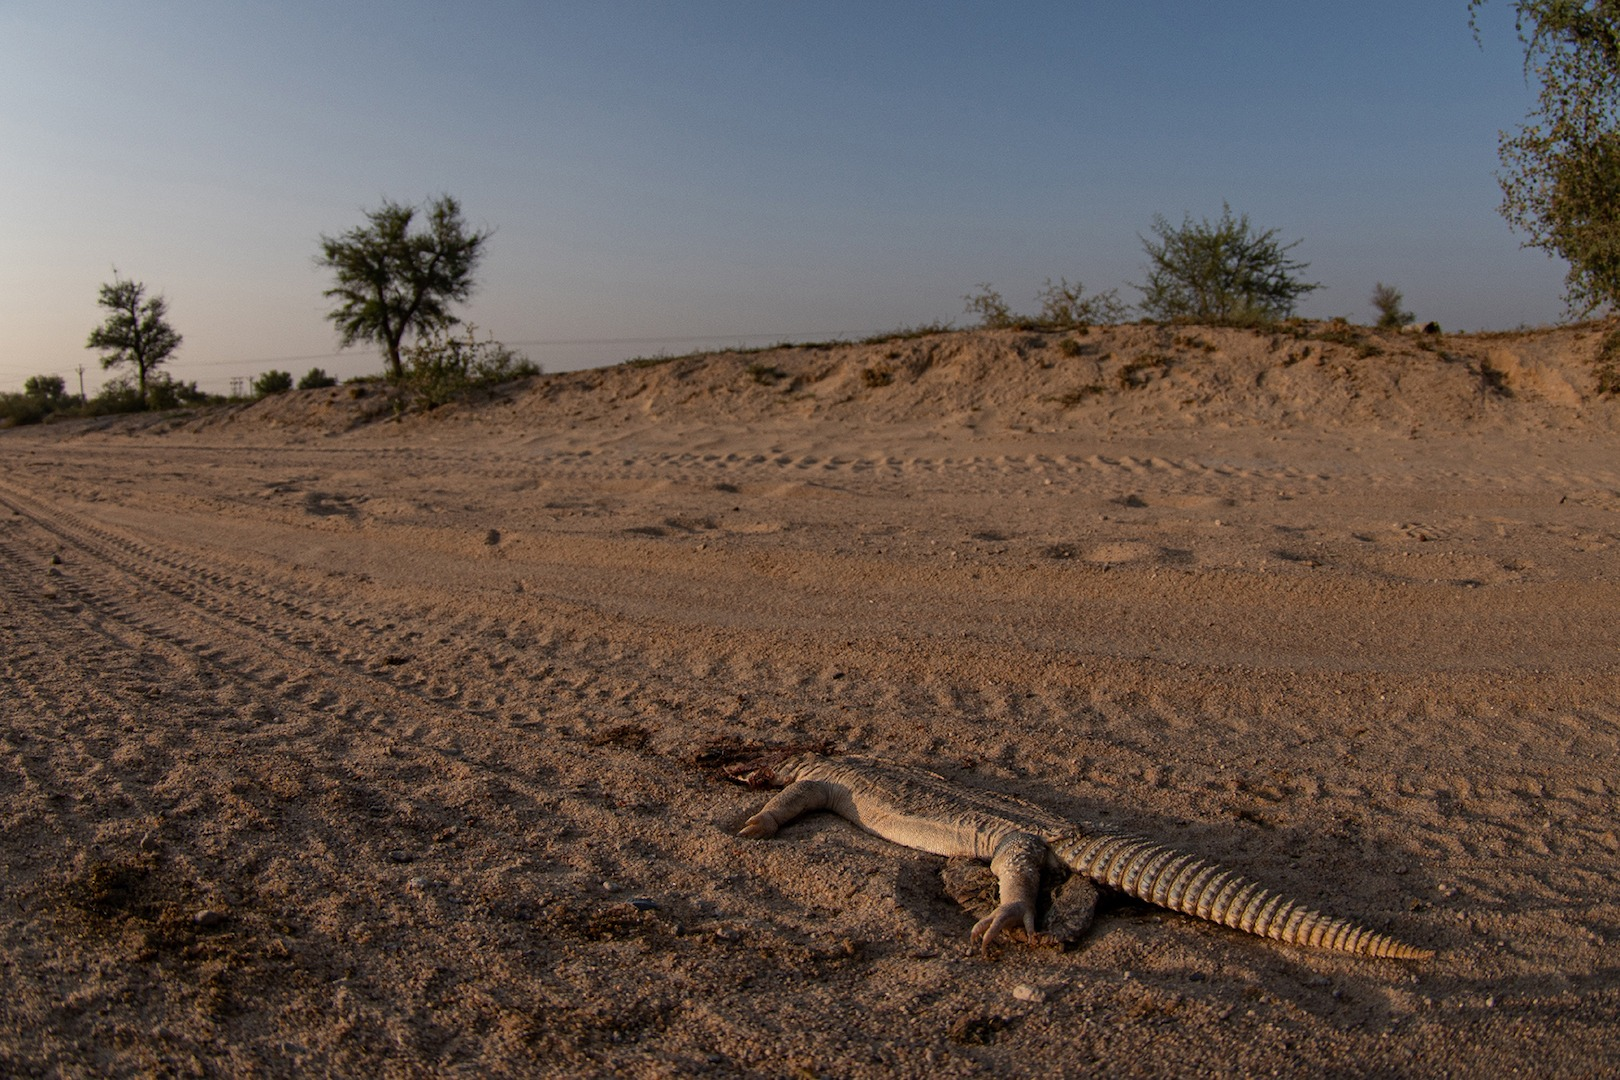 Of late, off-road driving and vehicular movement through desert regions have resulted in an increase in roadkill.